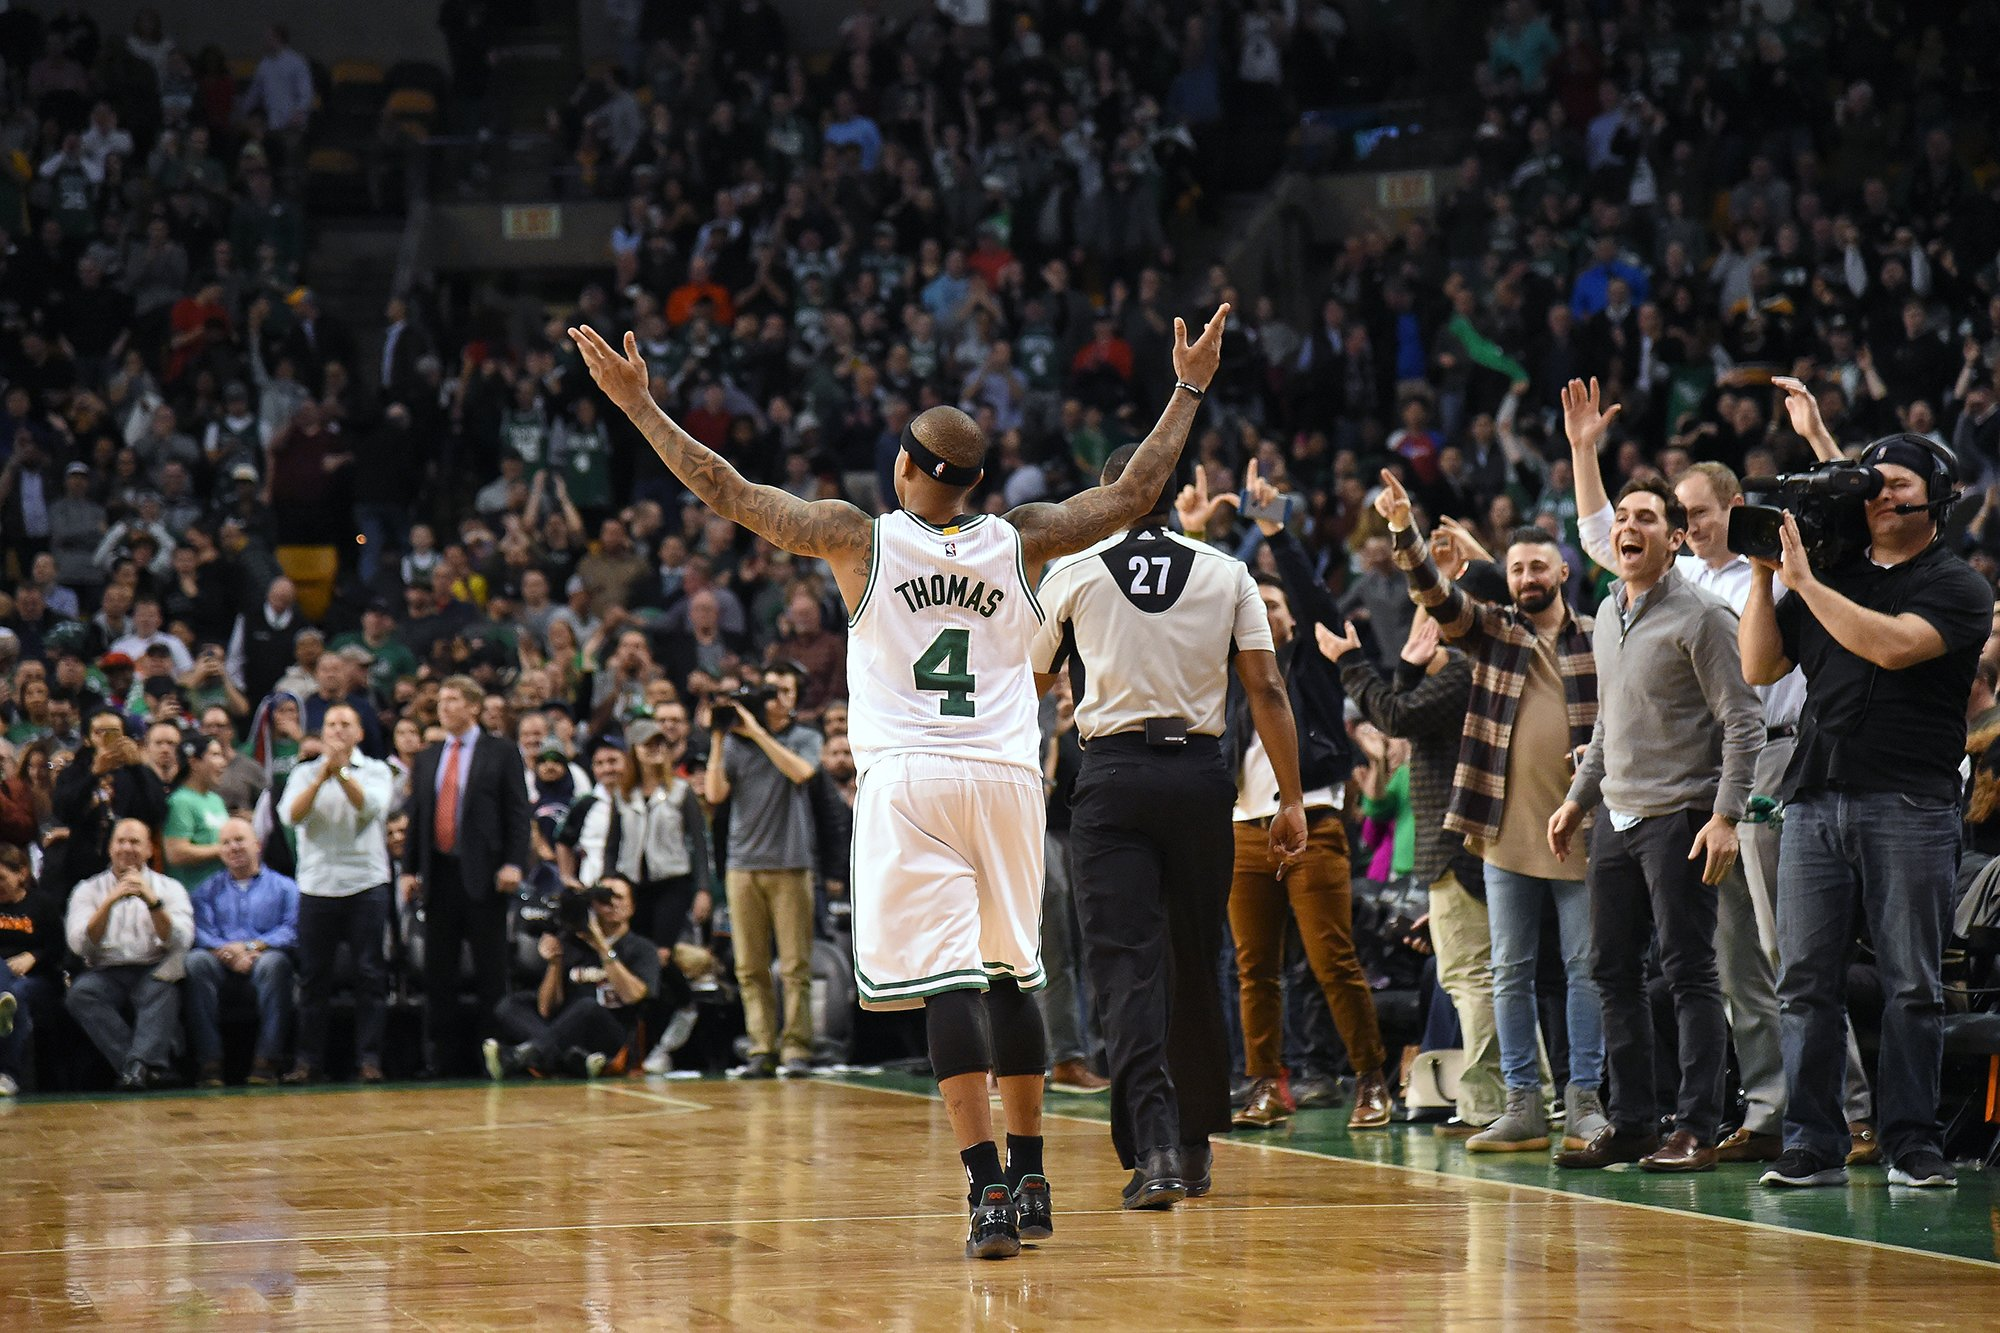 Isaiah Thomas celebrates, and so, sometimes, can we. (Photo by Brian Babineau/NBAE via Getty Images)